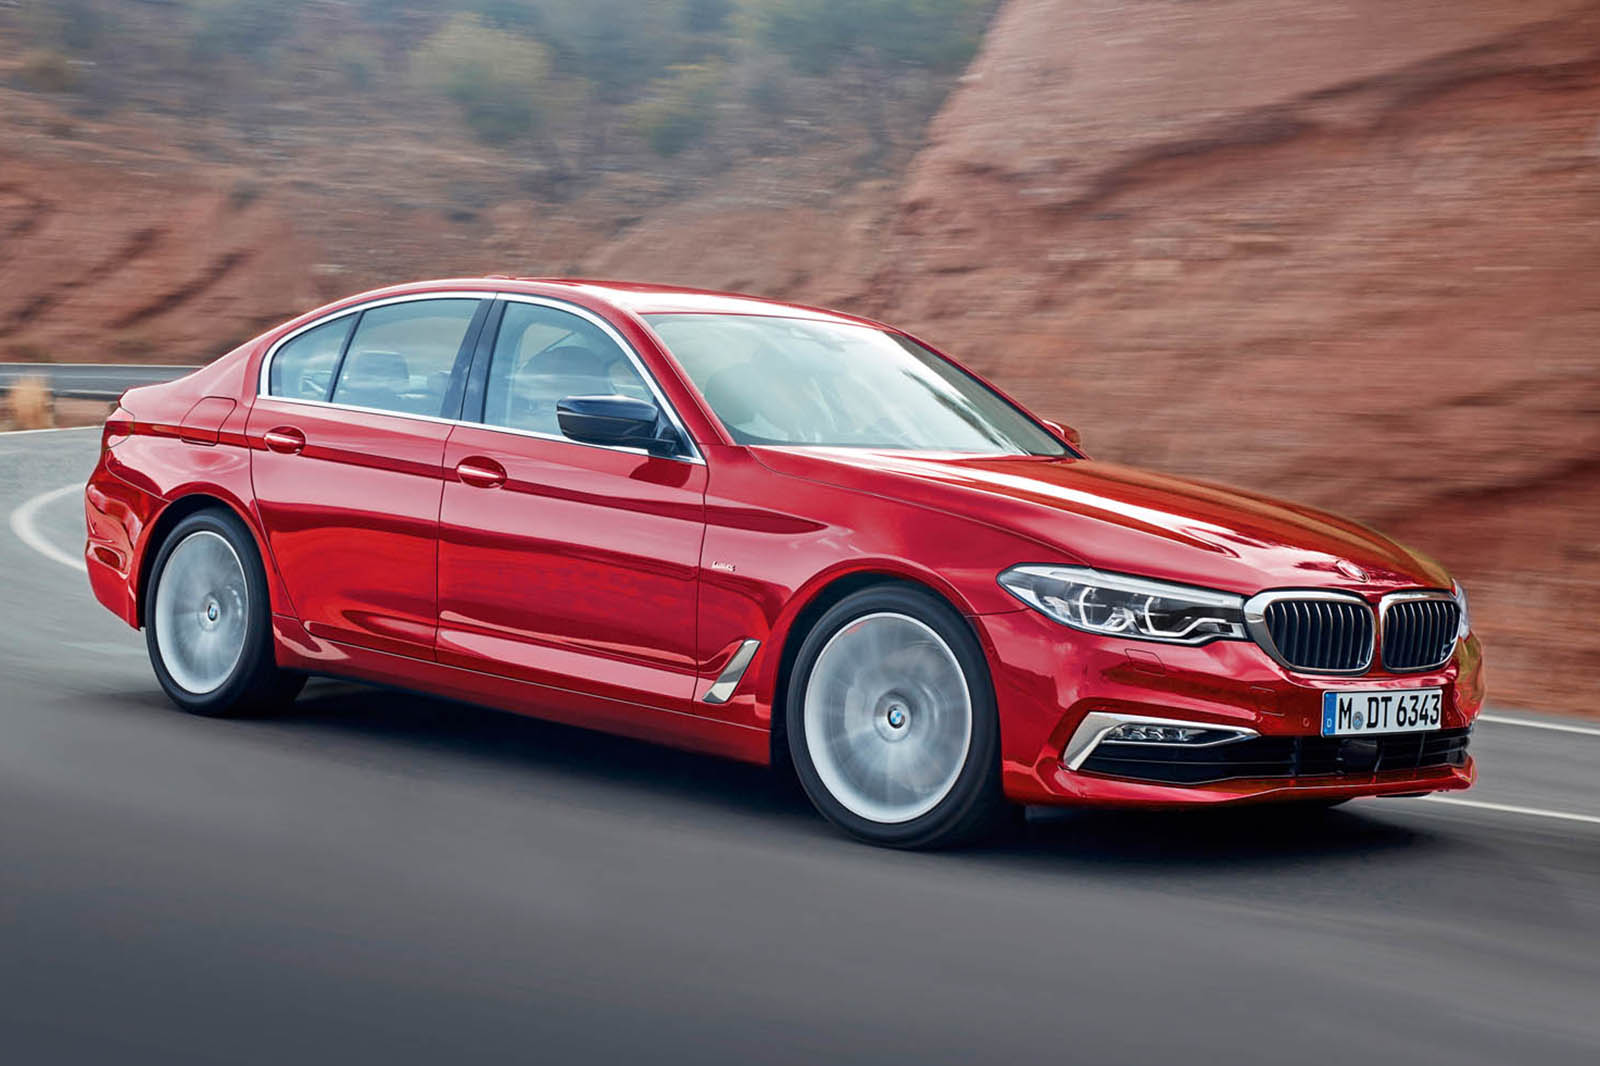 ... Be The Biggest Thing On The Road At The Moment (in Both Senses), But  The BMW 5 Series Sells In Such Numbers That It Remains BMWu0027s Most  Profitable Model.